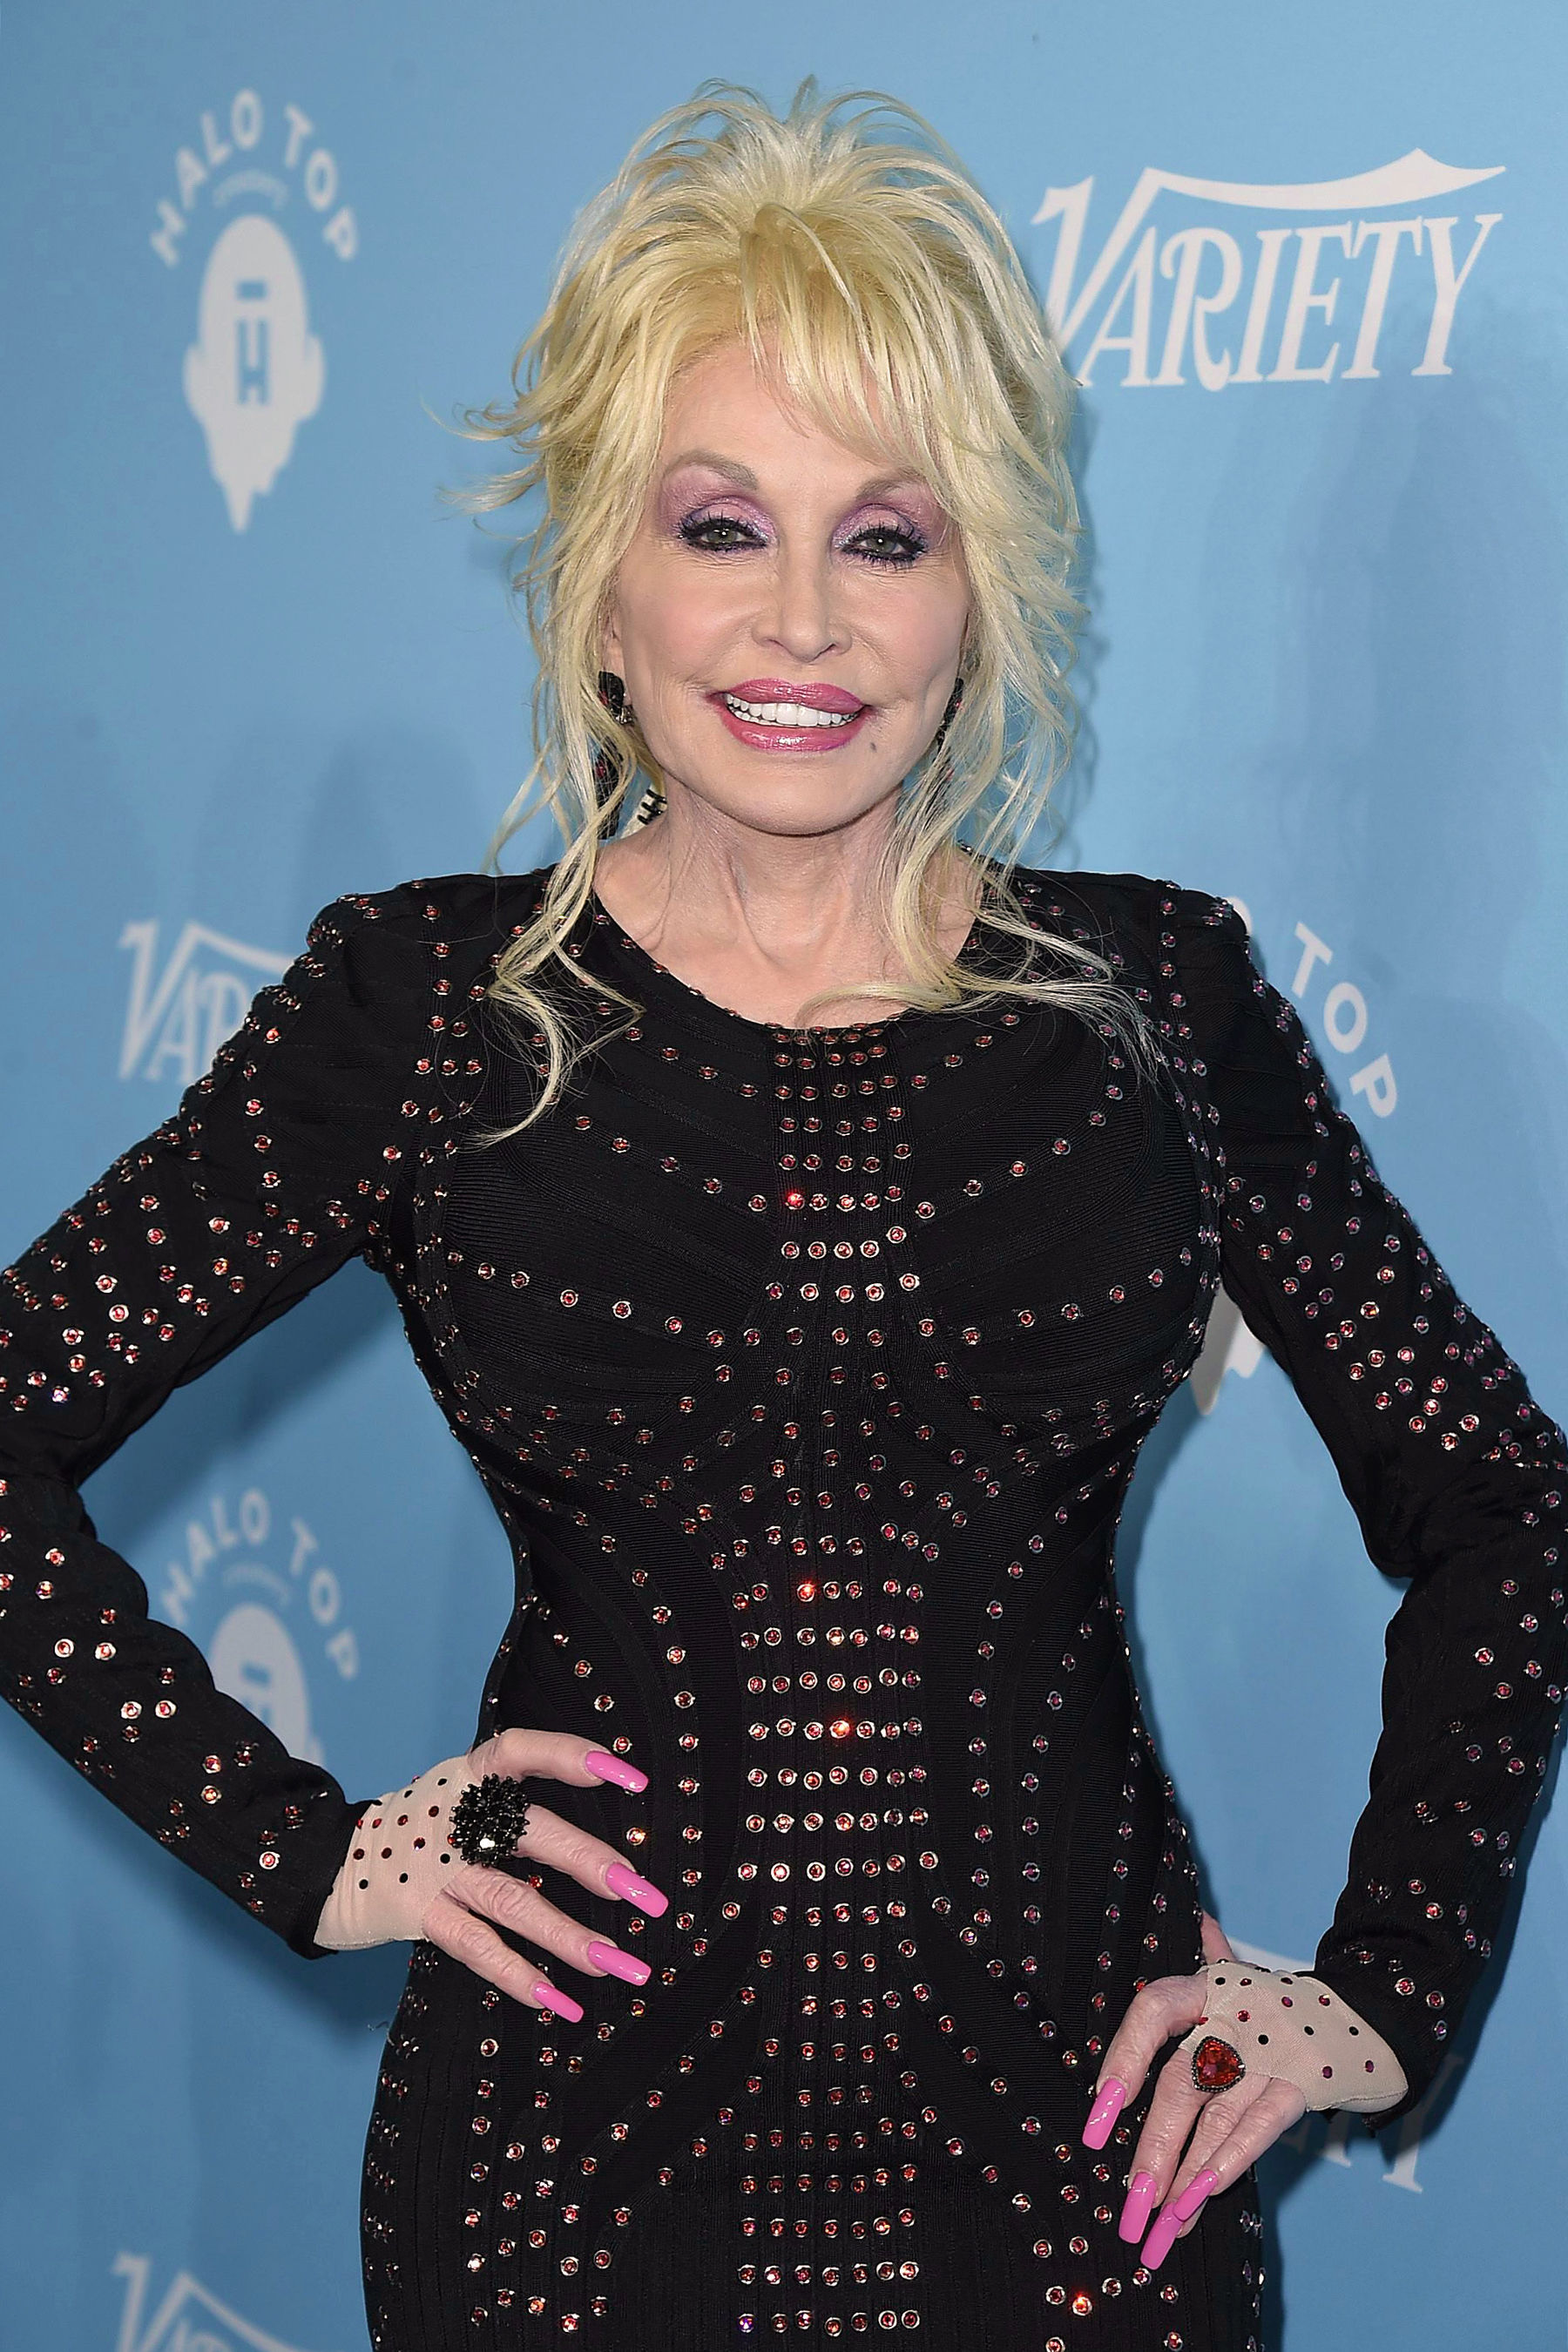 Dolly Parton Admits She Sleeps with Her Makeup On – Here's Her Reason Why